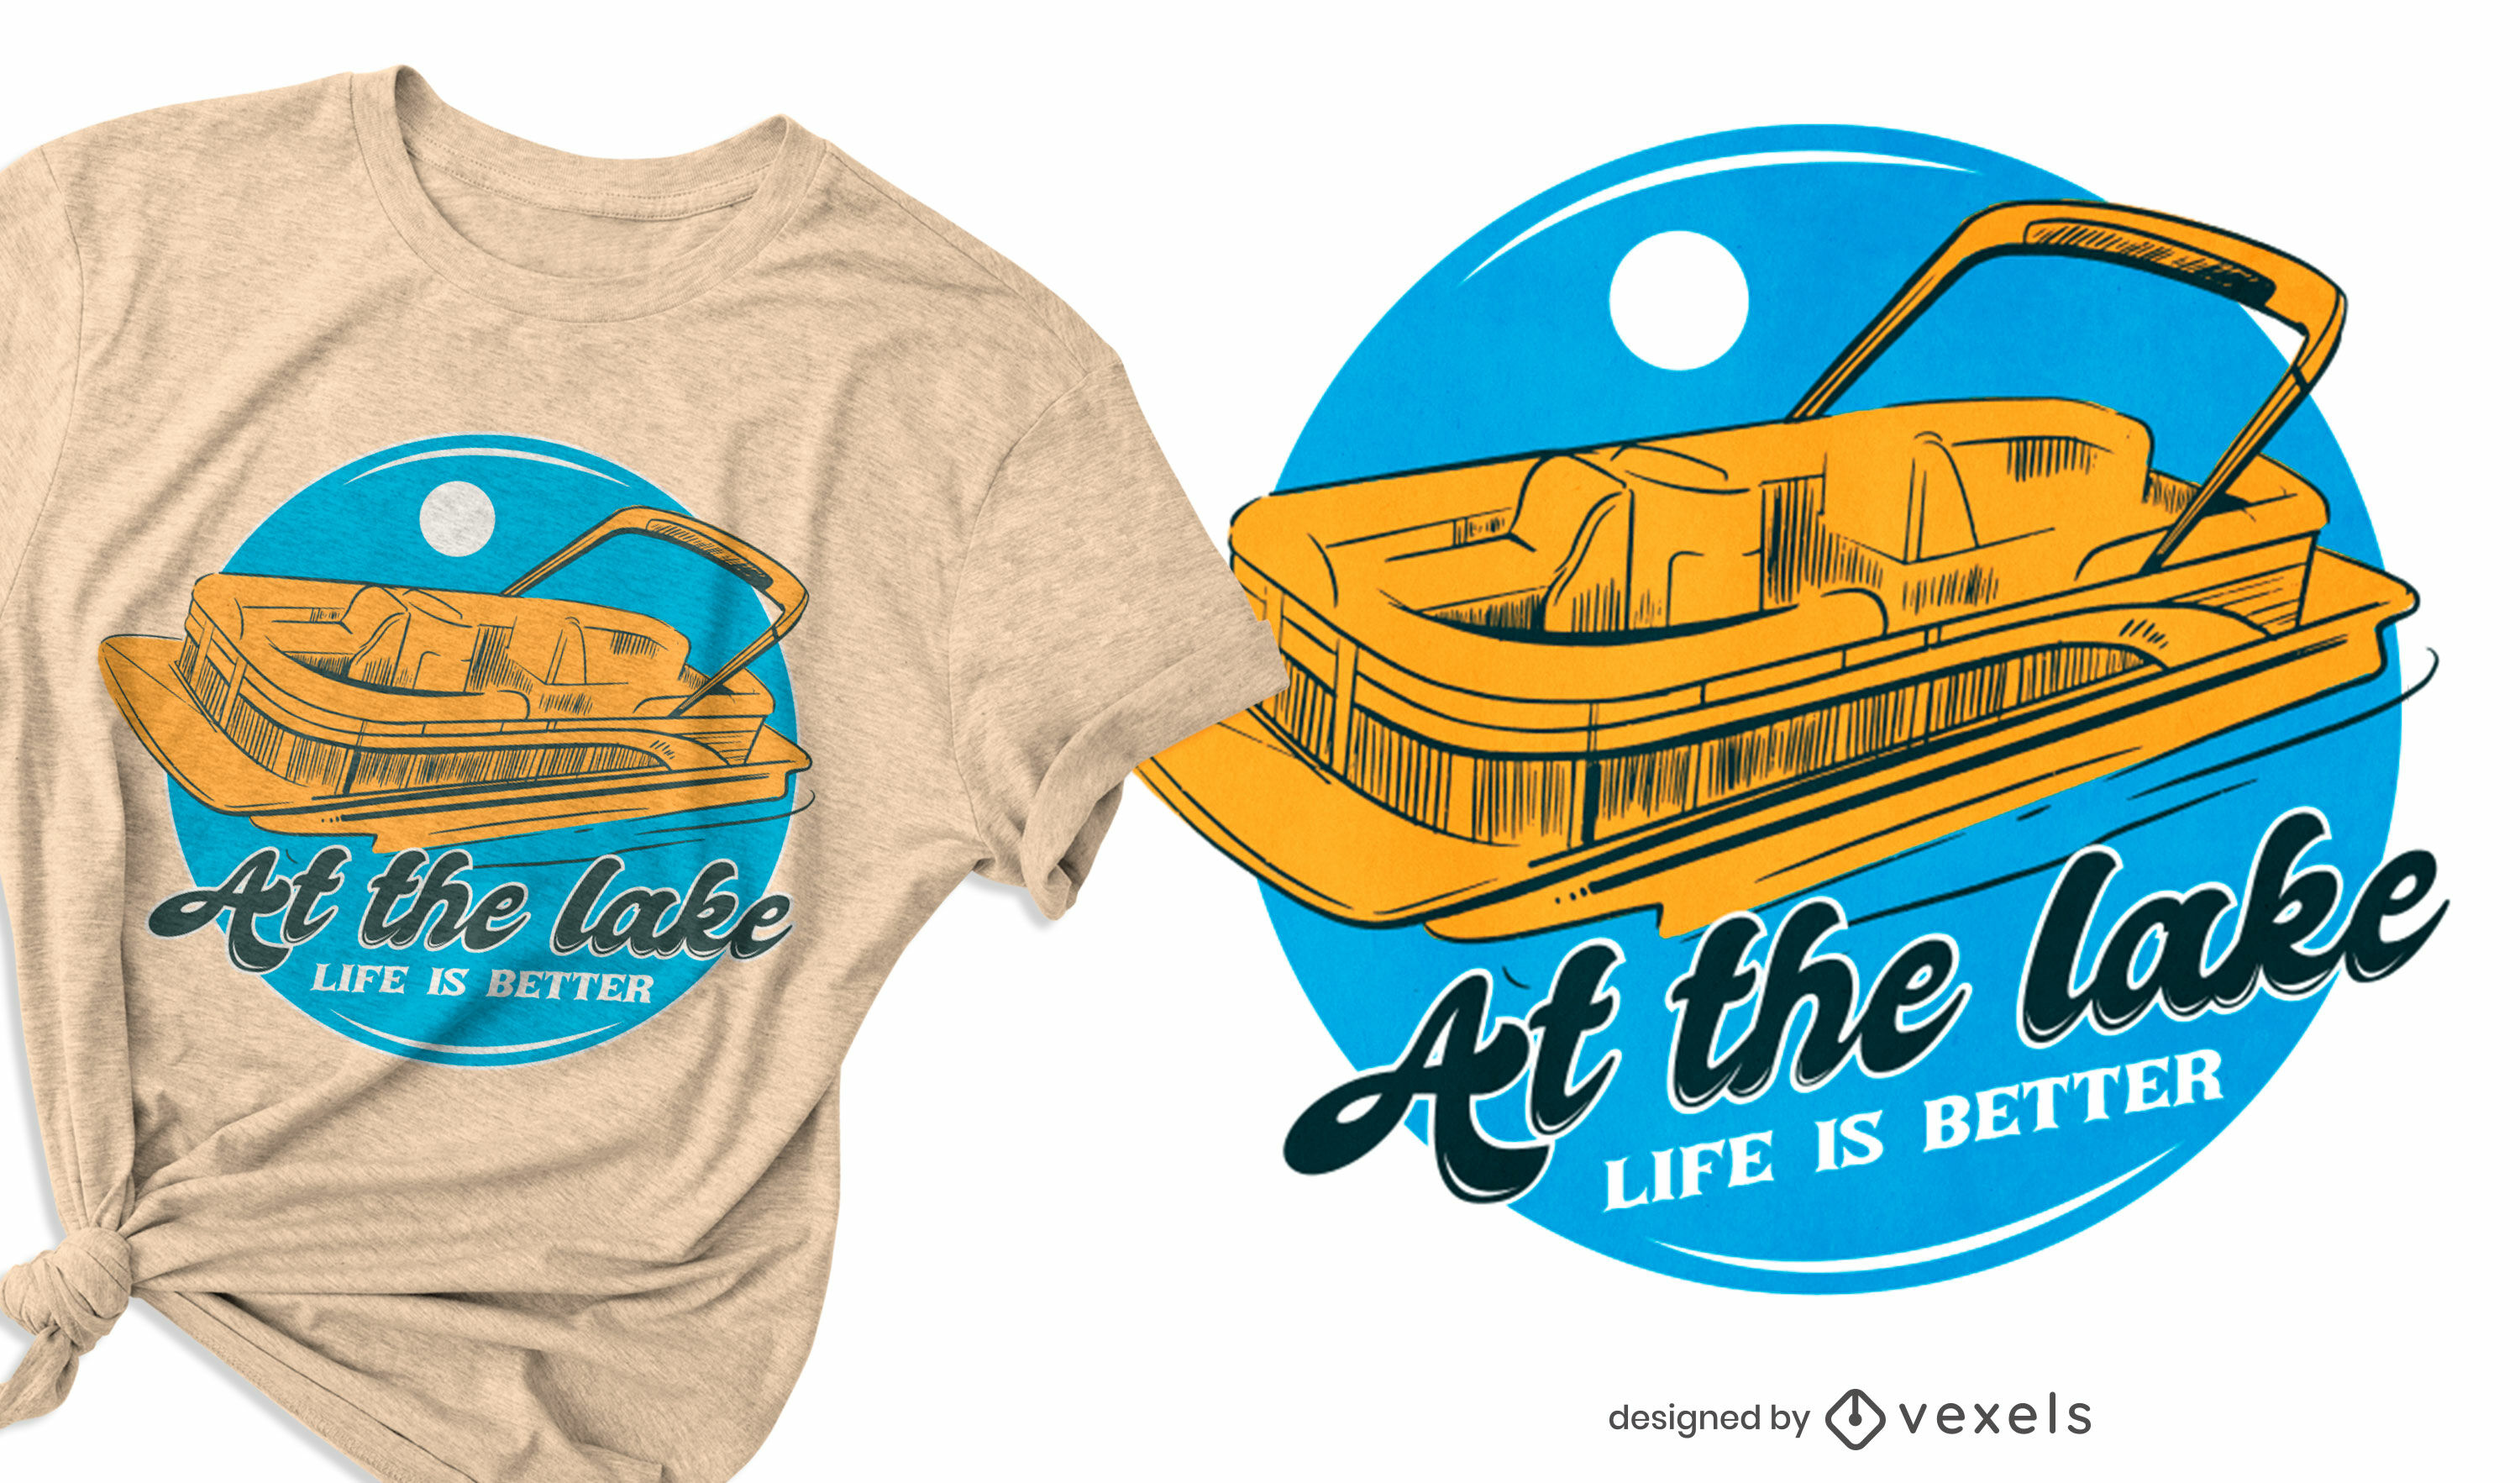 Boat in the lake quote t-shirt design